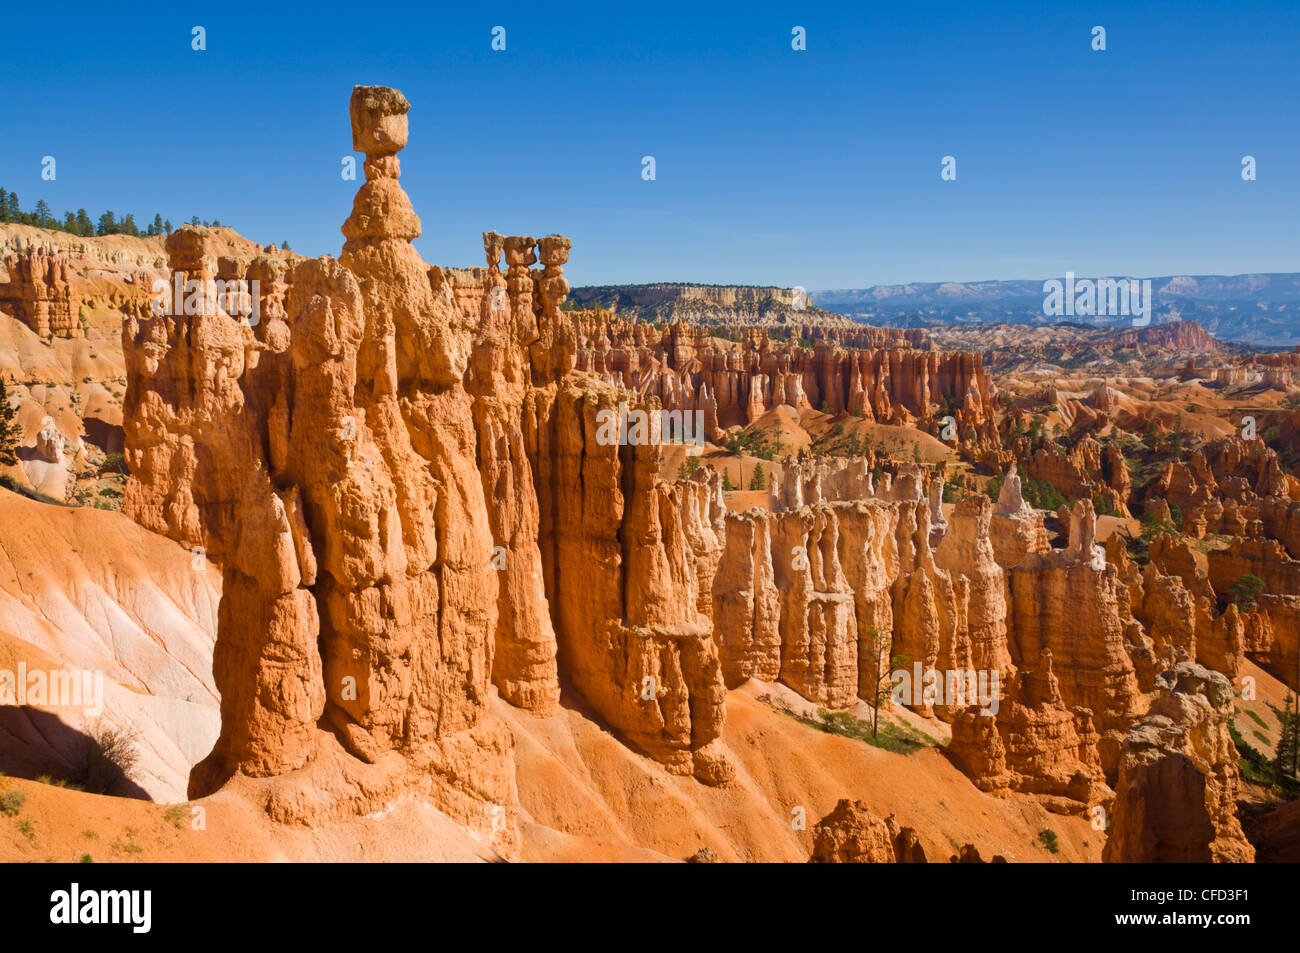 El martillo de Thor, Bryce Canyon National Park, Utah, EE.UU. Imagen De Stock